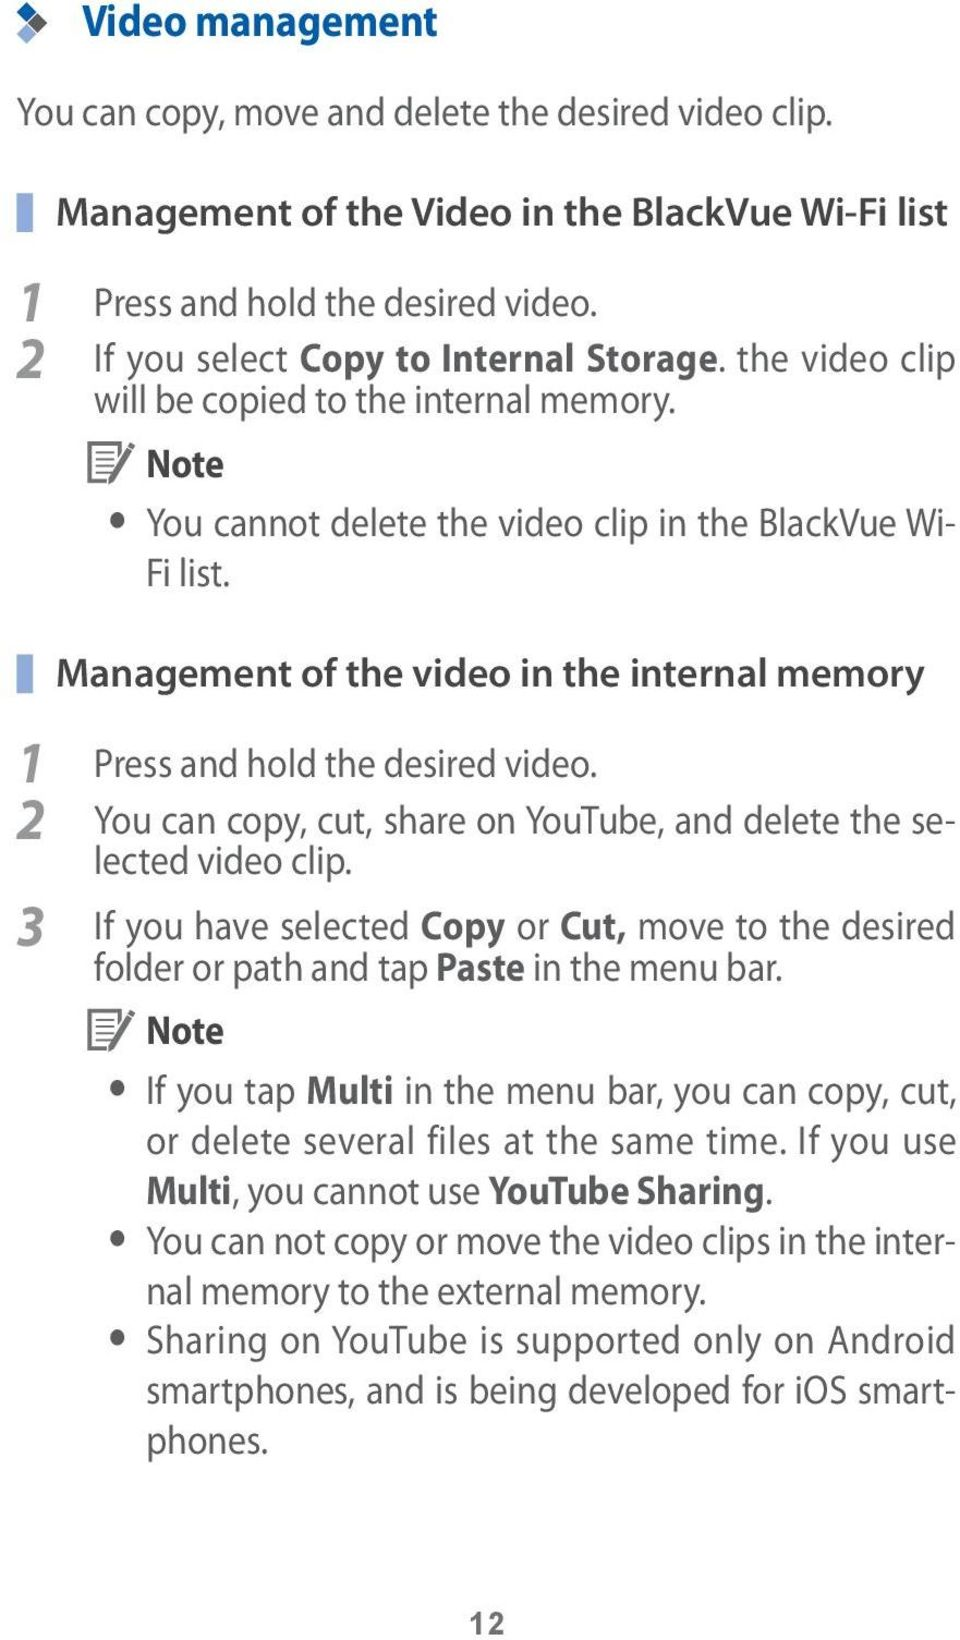 2 You can copy, cut, share on YouTube, and delete the selected video clip. 3 If you have selected Copy or Cut, move to the desired folder or path and tap Paste in the menu bar.